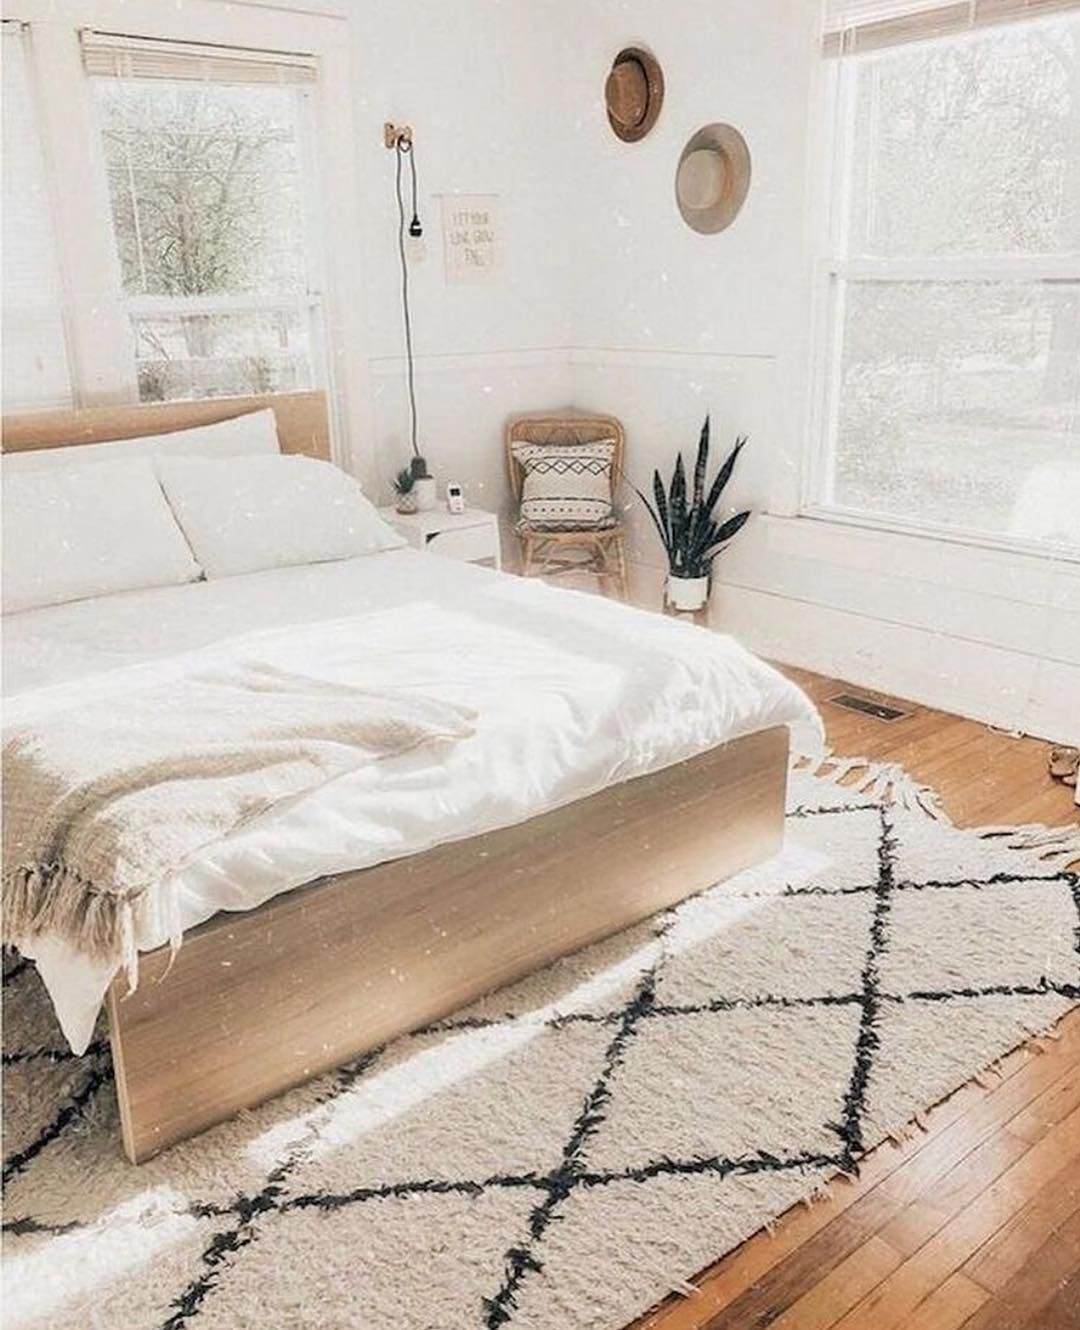 New The 10 Best Home Decor With Pictures Ate Amanha Via Pinterest Home Decor Bed B Urban Outfiters Bedroom Scandinavian Design Bedroom Home Bedroom